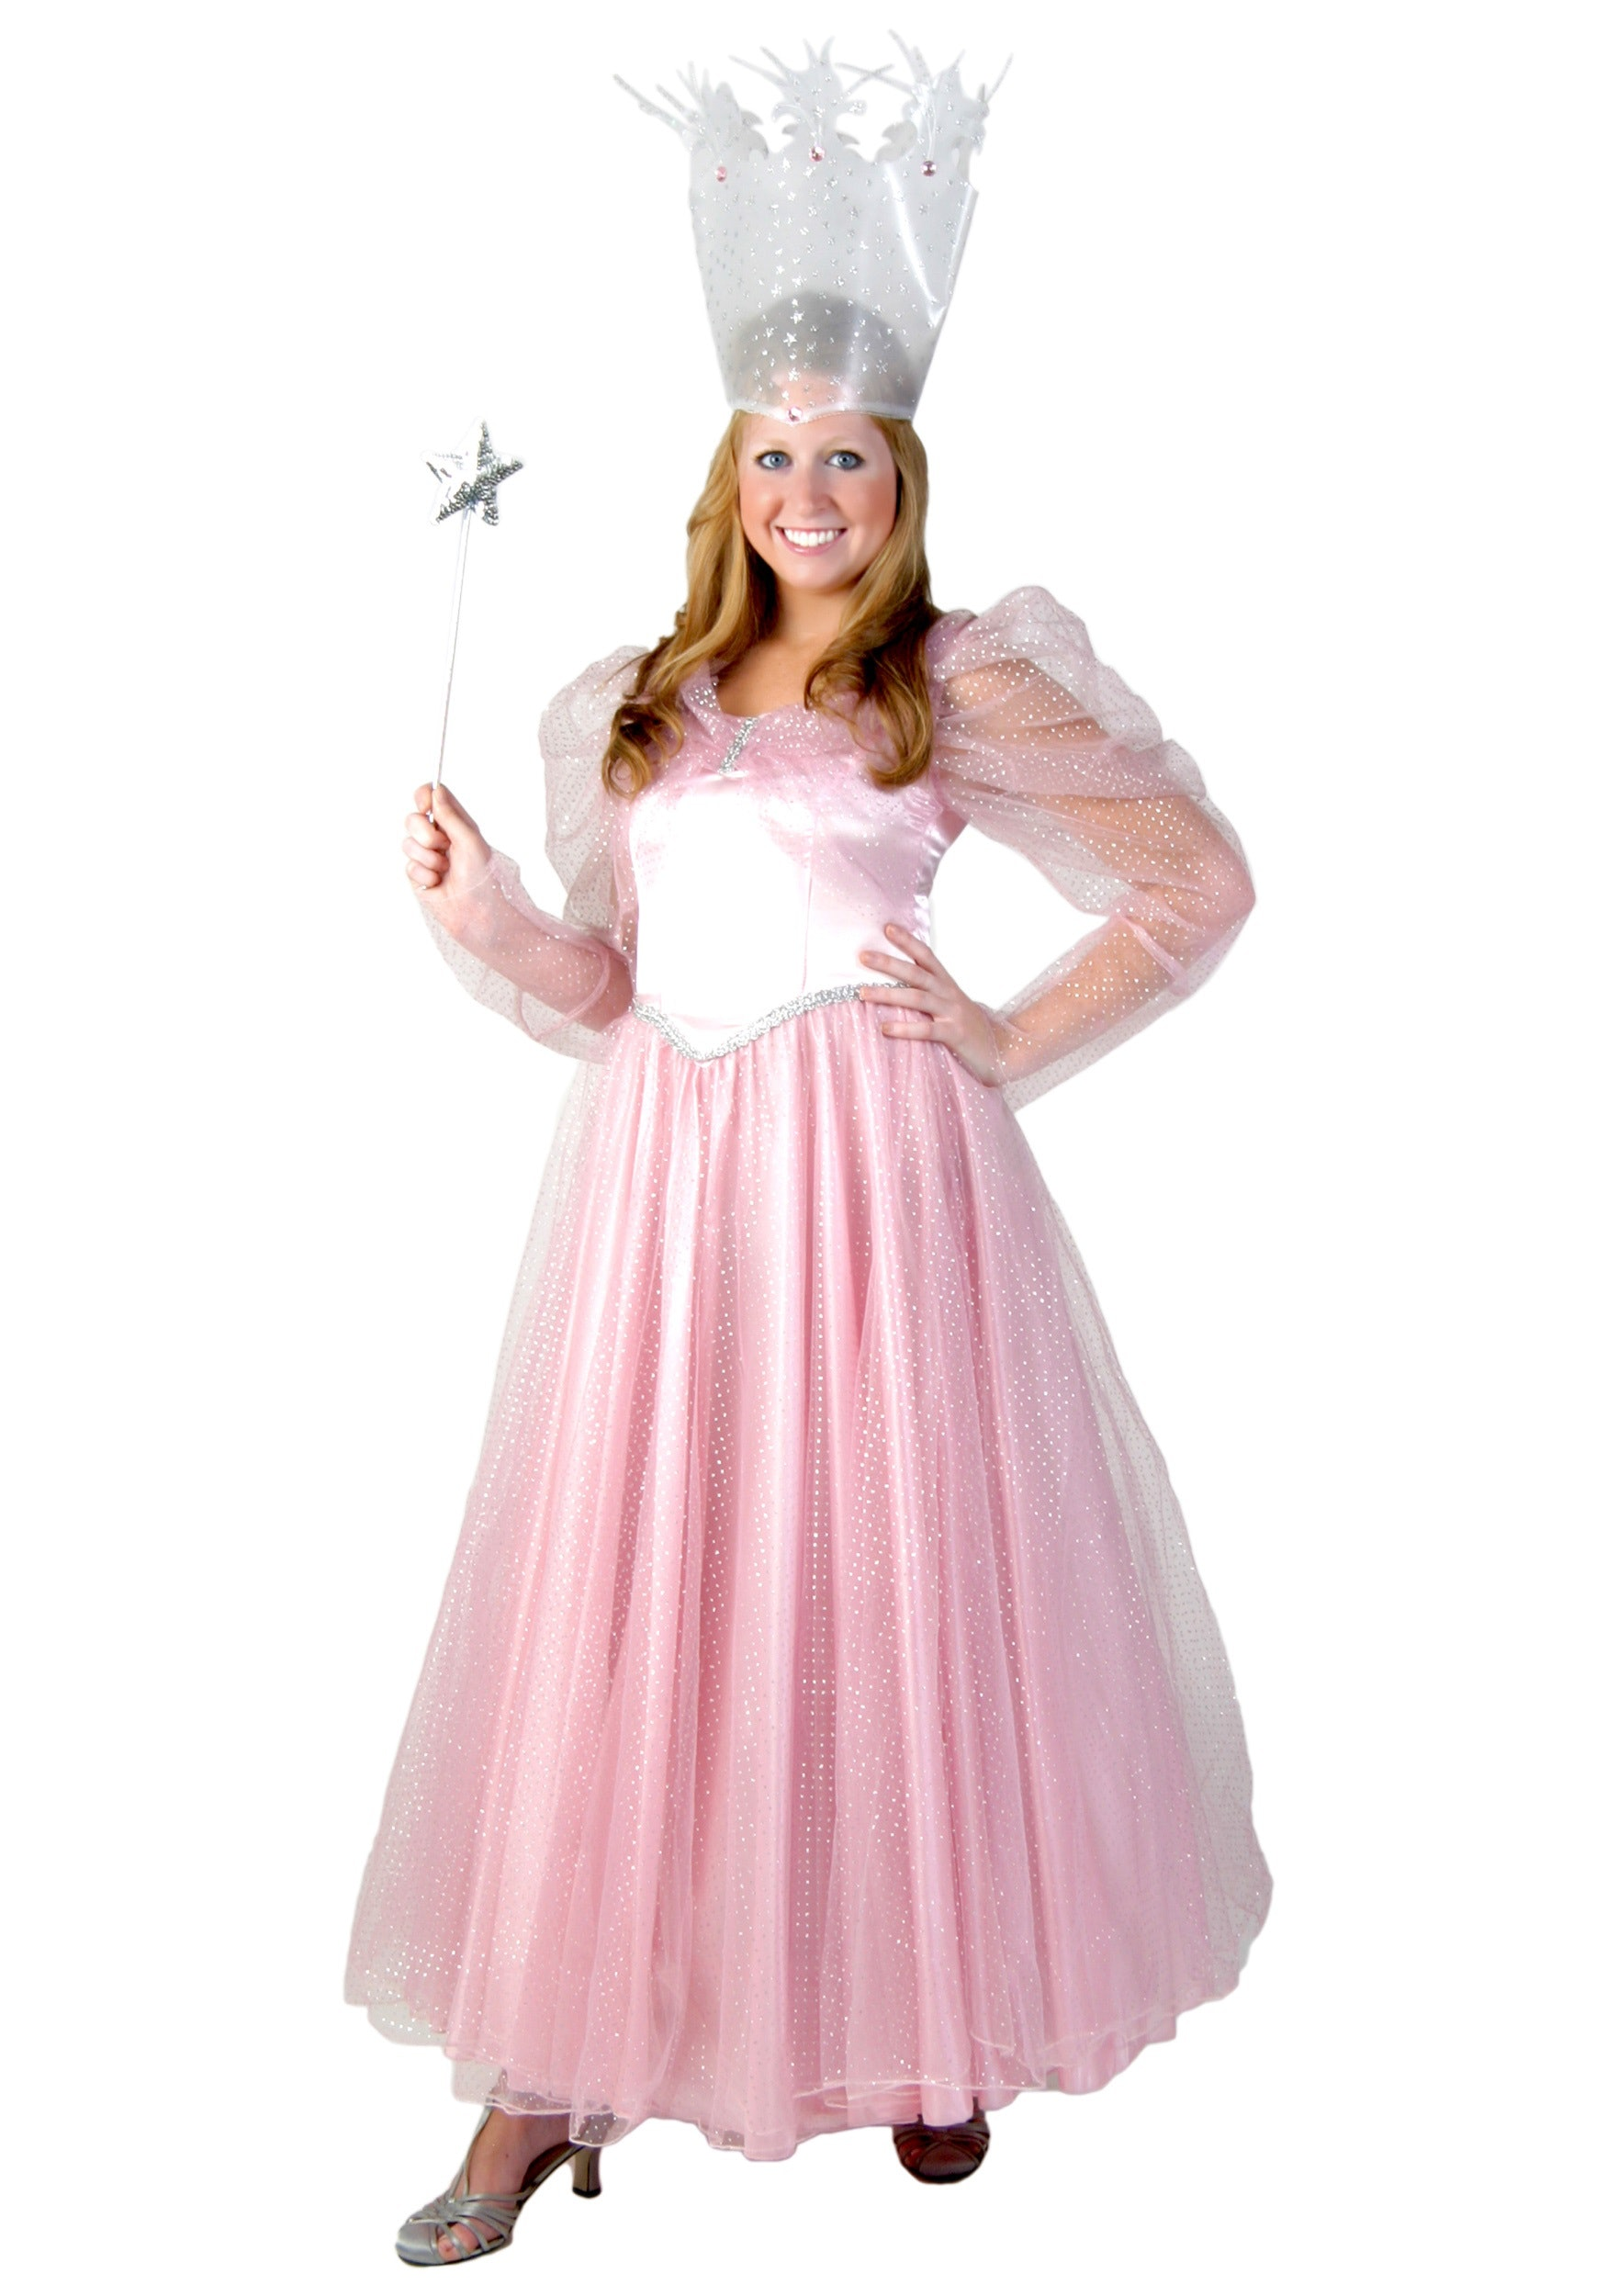 19 plus size halloween costumes in 5x 6x higher because fantasy has no size limit